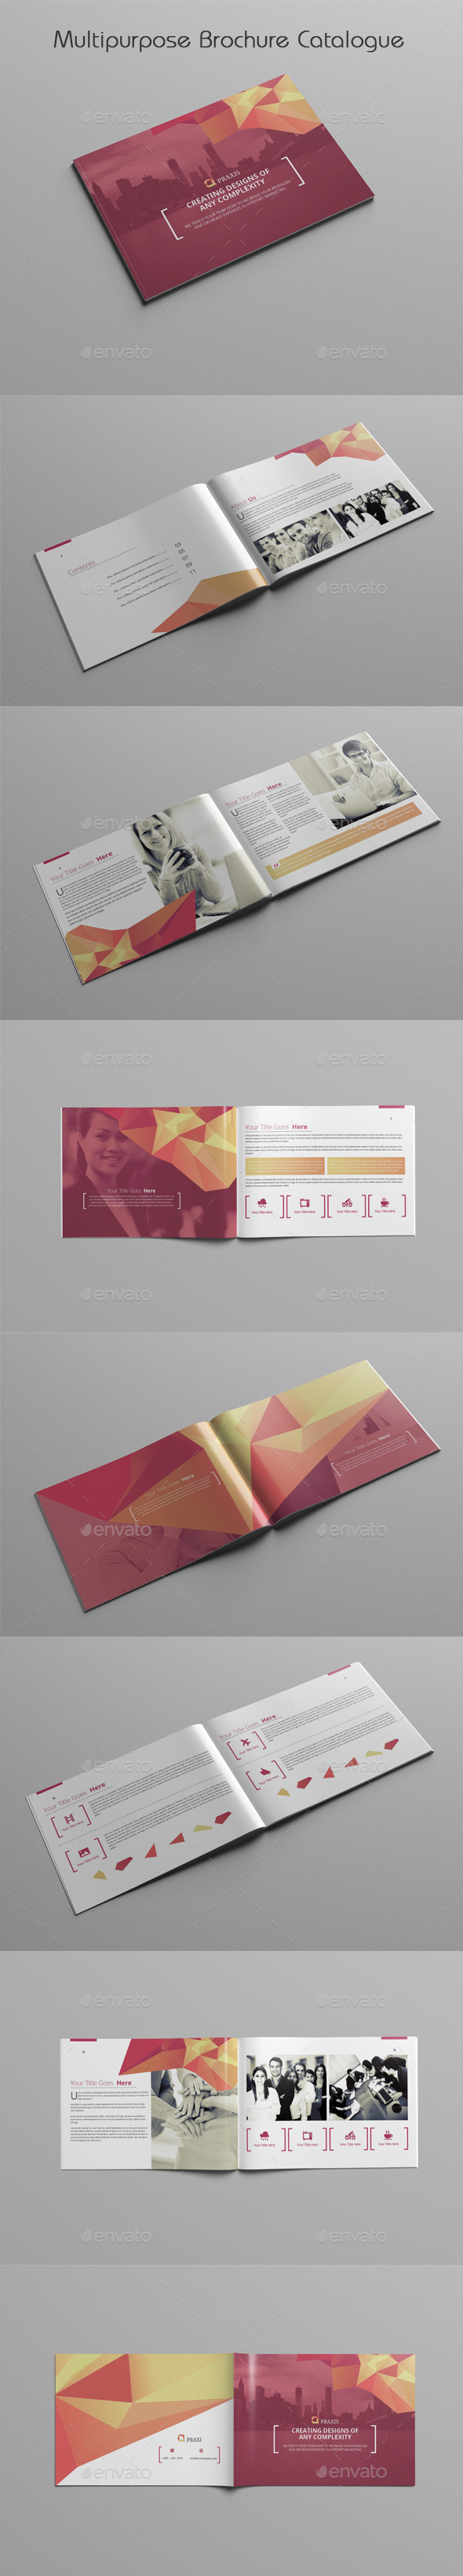 Multipurpose Brochure Catalogue - Brochures Print Templates